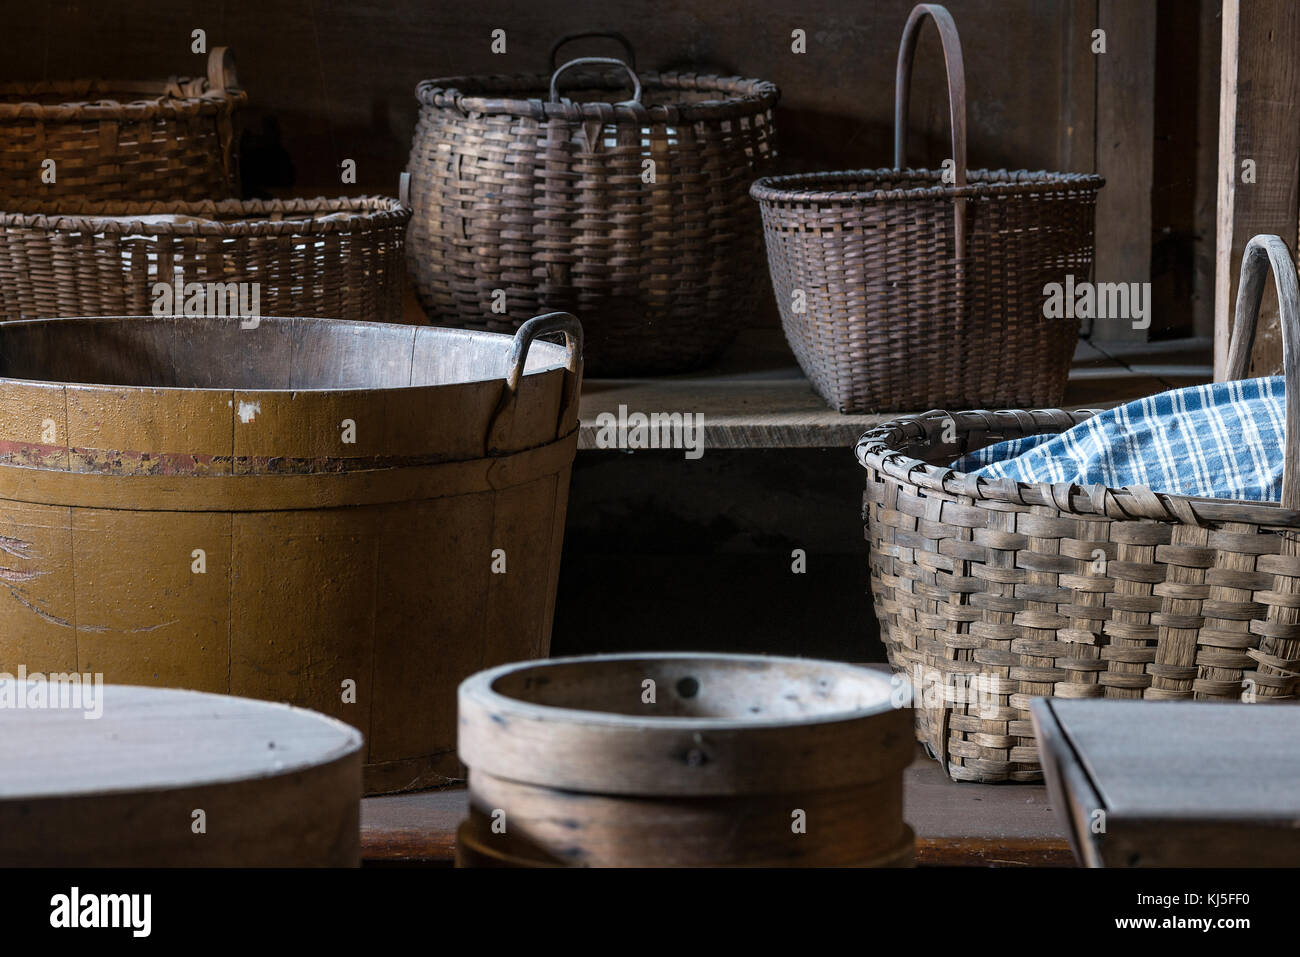 Variety of Shaker baskets, Hancock Shaker Village, Massachusetts, USA. - Stock Image